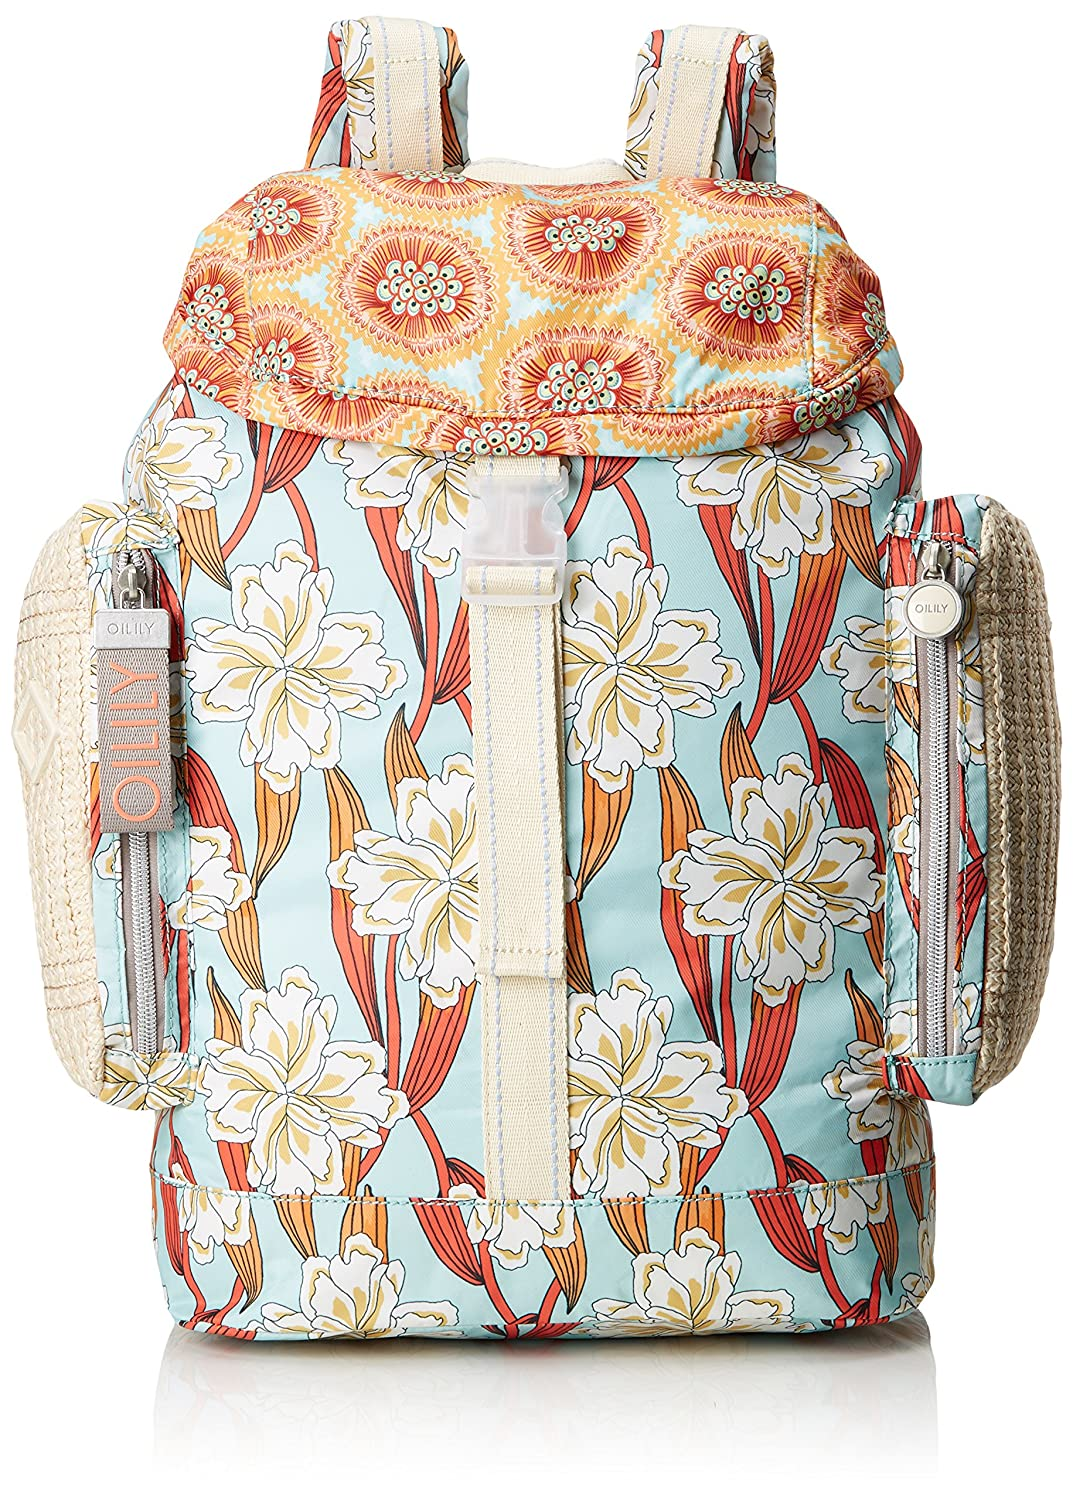 Dos Whoopy Portés Ornament LvzSacs Femme Backpack Oilily nNwX8PZk0O